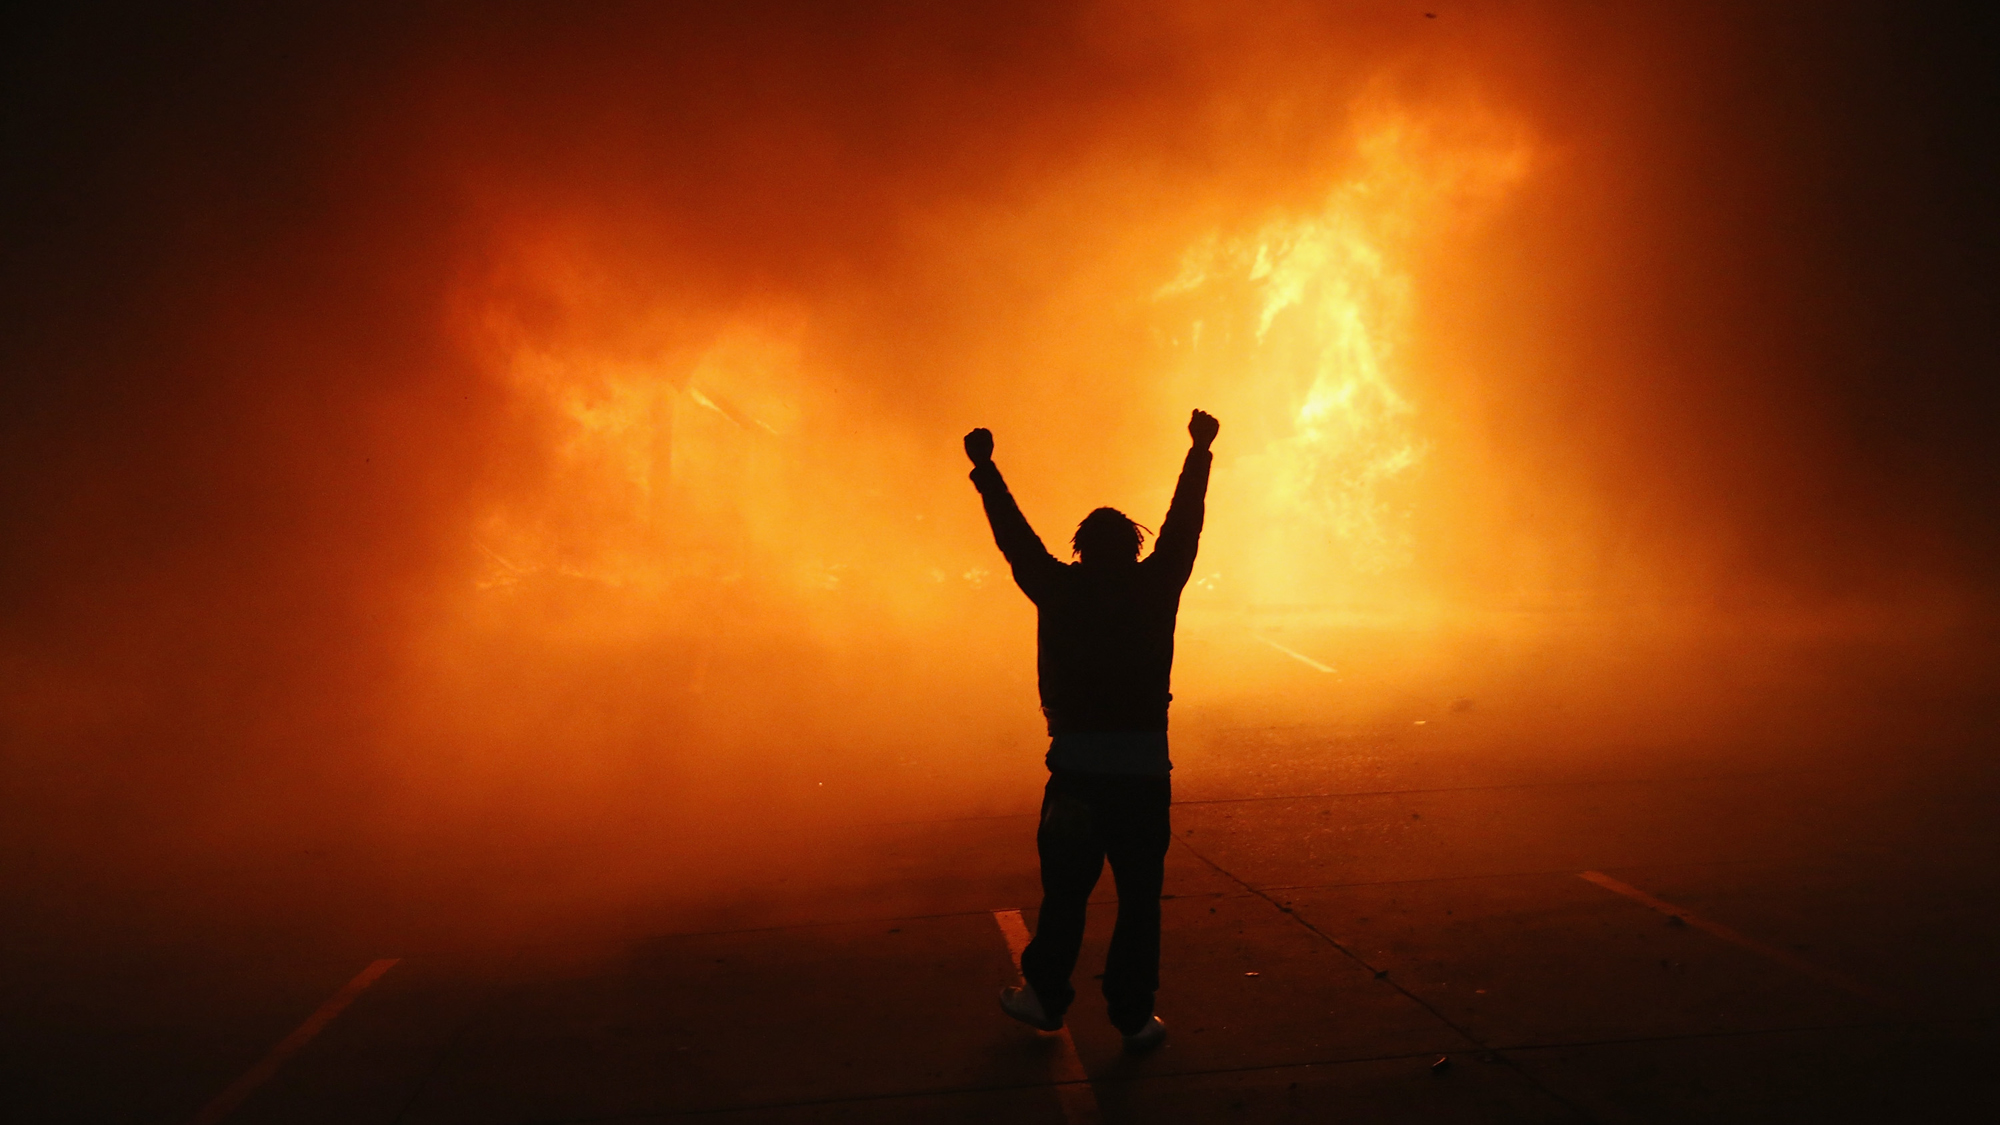 A demonstrator celebrates as a business burns after it was set on fire during rioting following the grand jury announcement in the Michael Brown case on November 24, 2014 in Ferguson, Missouri.